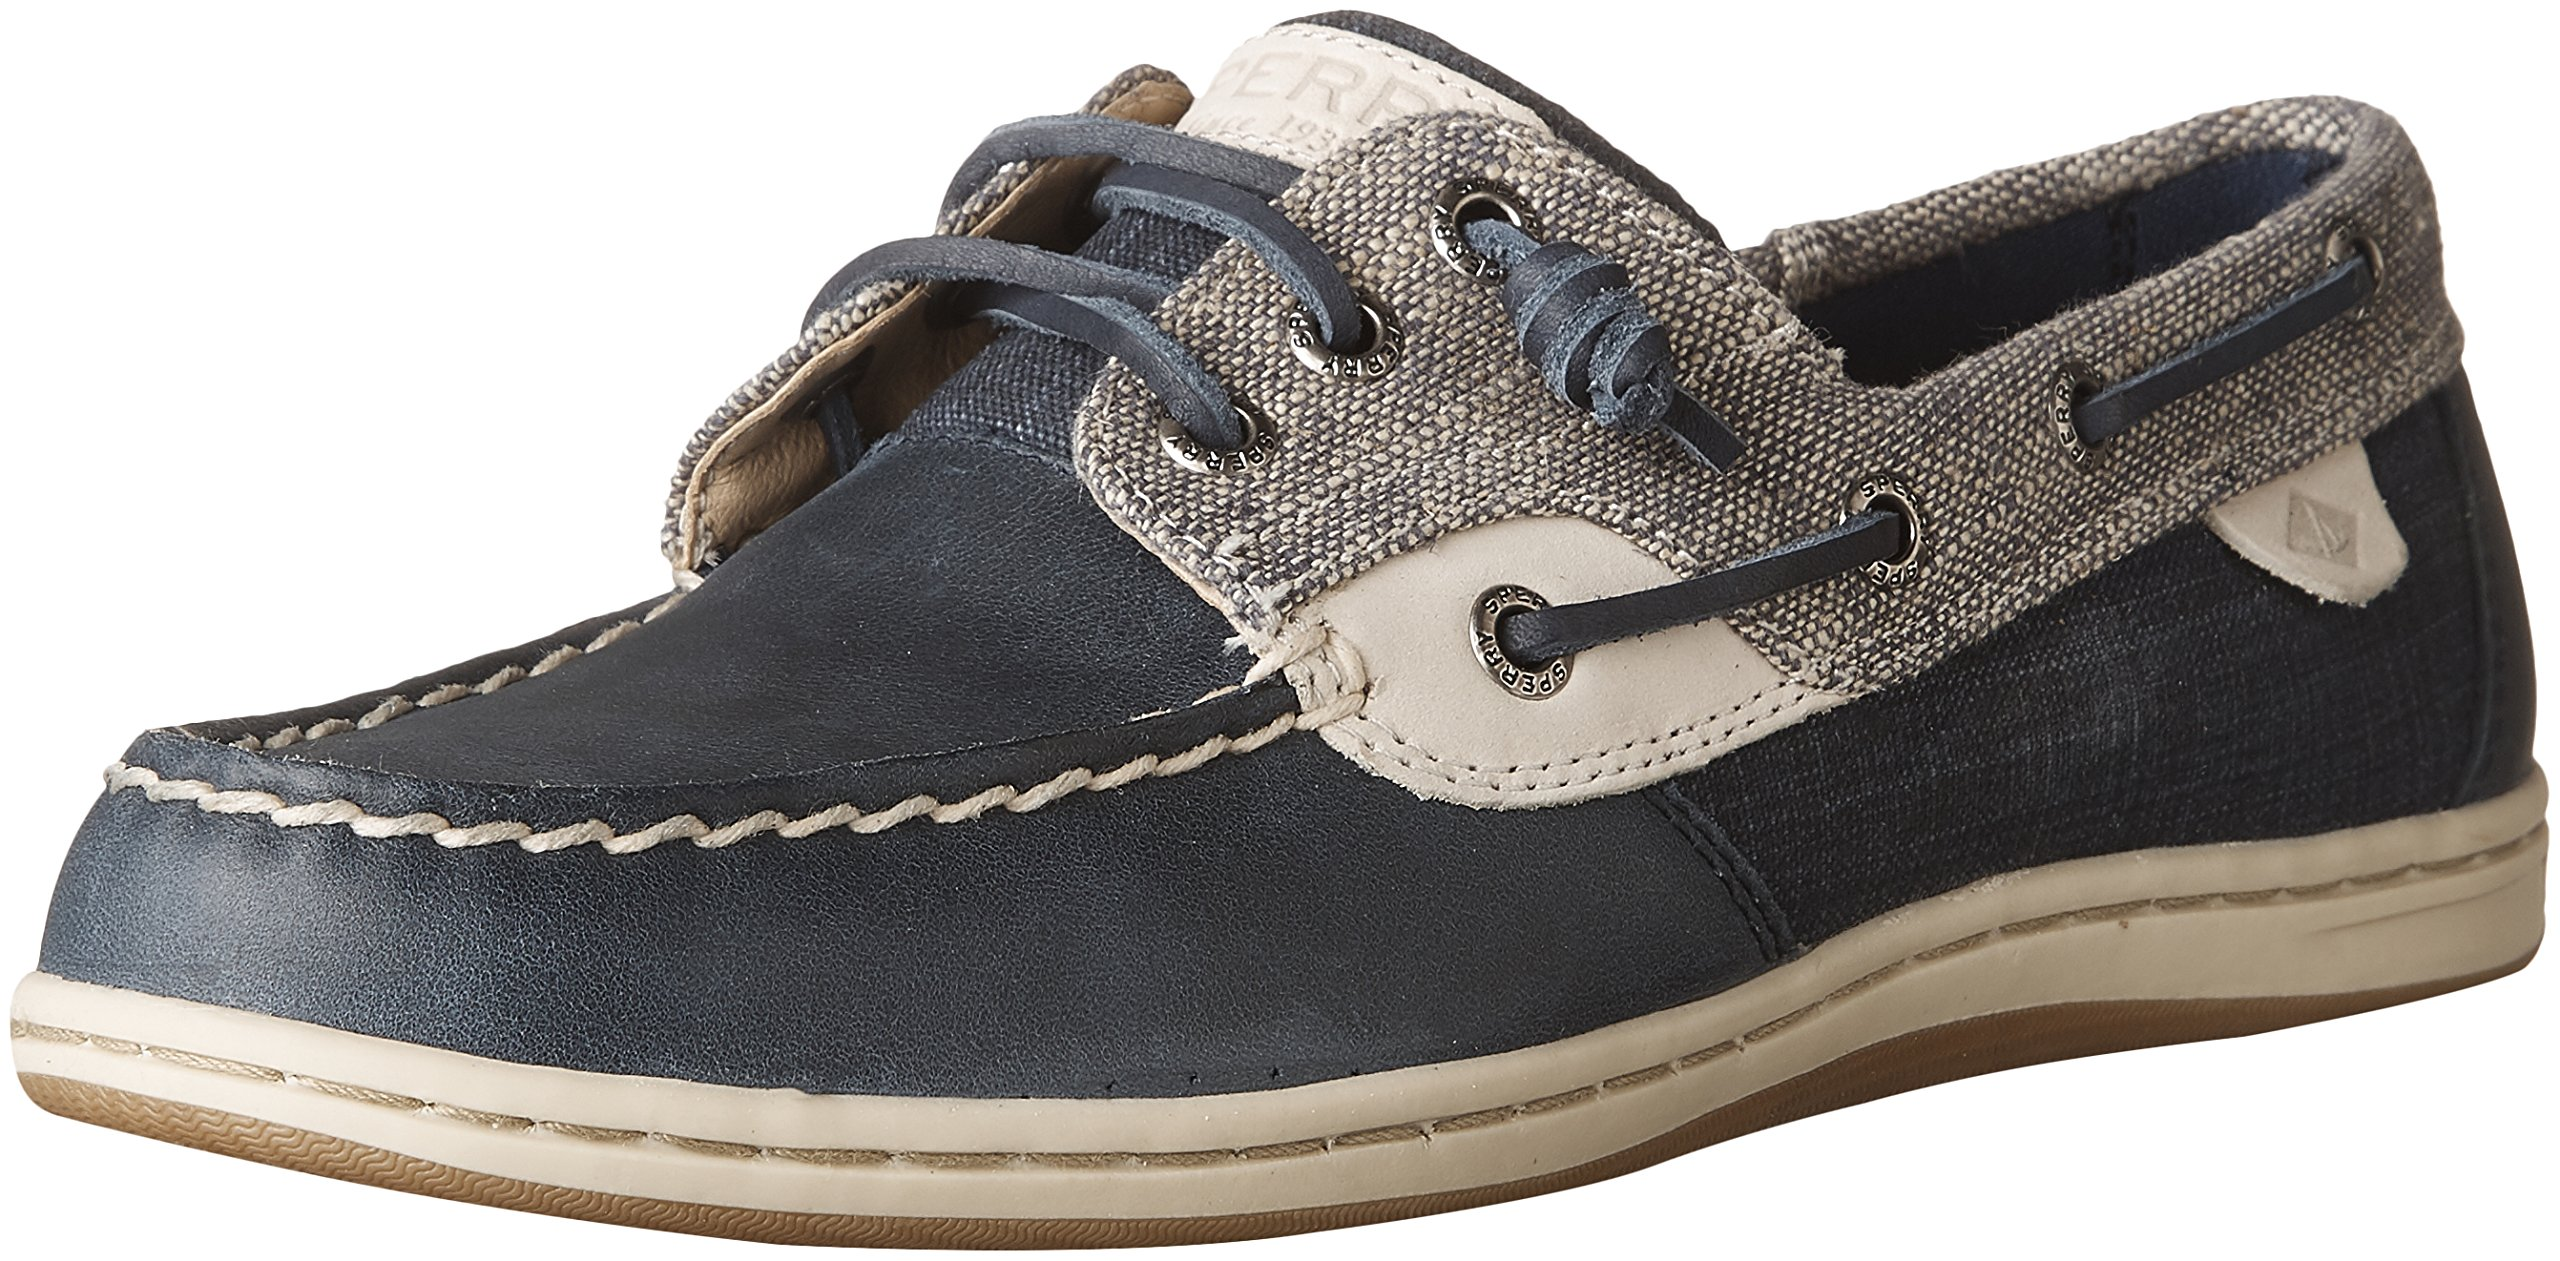 Sperry Top-Sider Women's Songfish Heavy Linen Boat Shoe